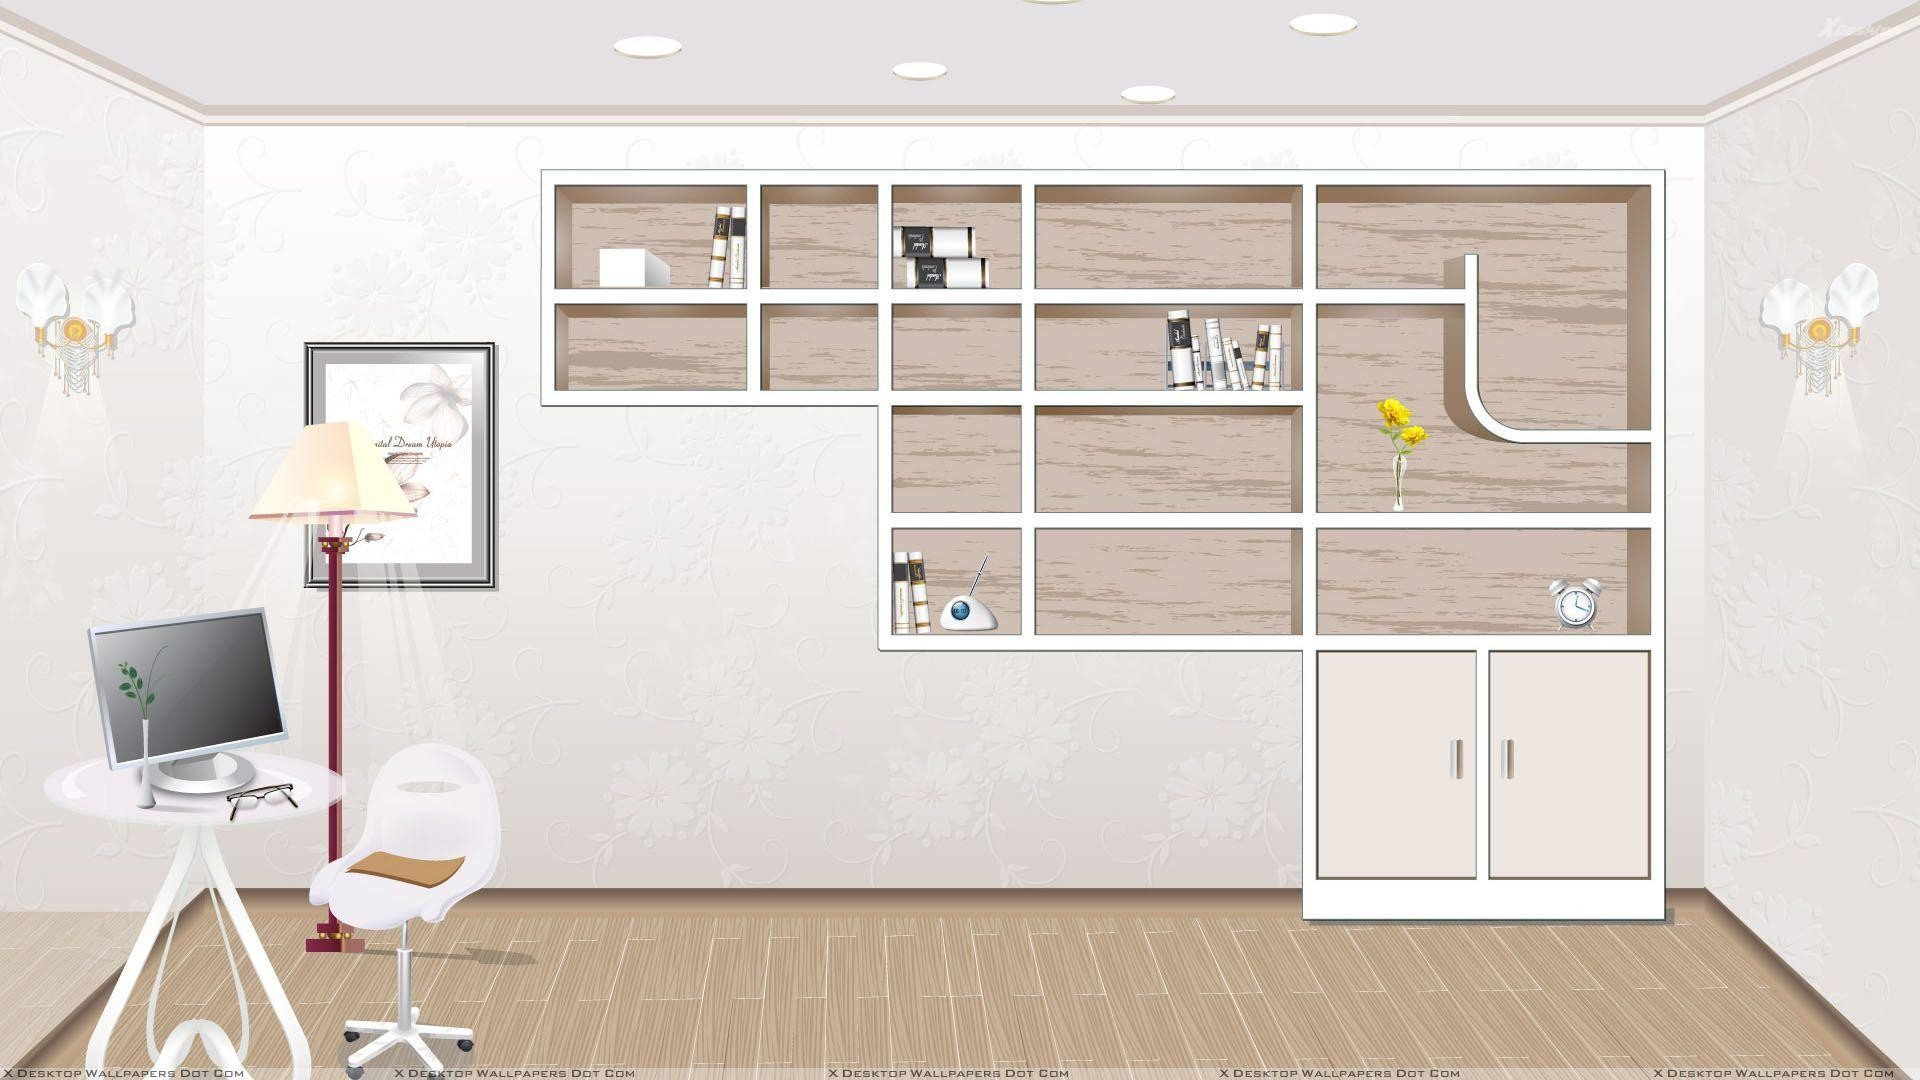 1920x1080 Dark bookcase, office desktop shelves wallpaper clever office .